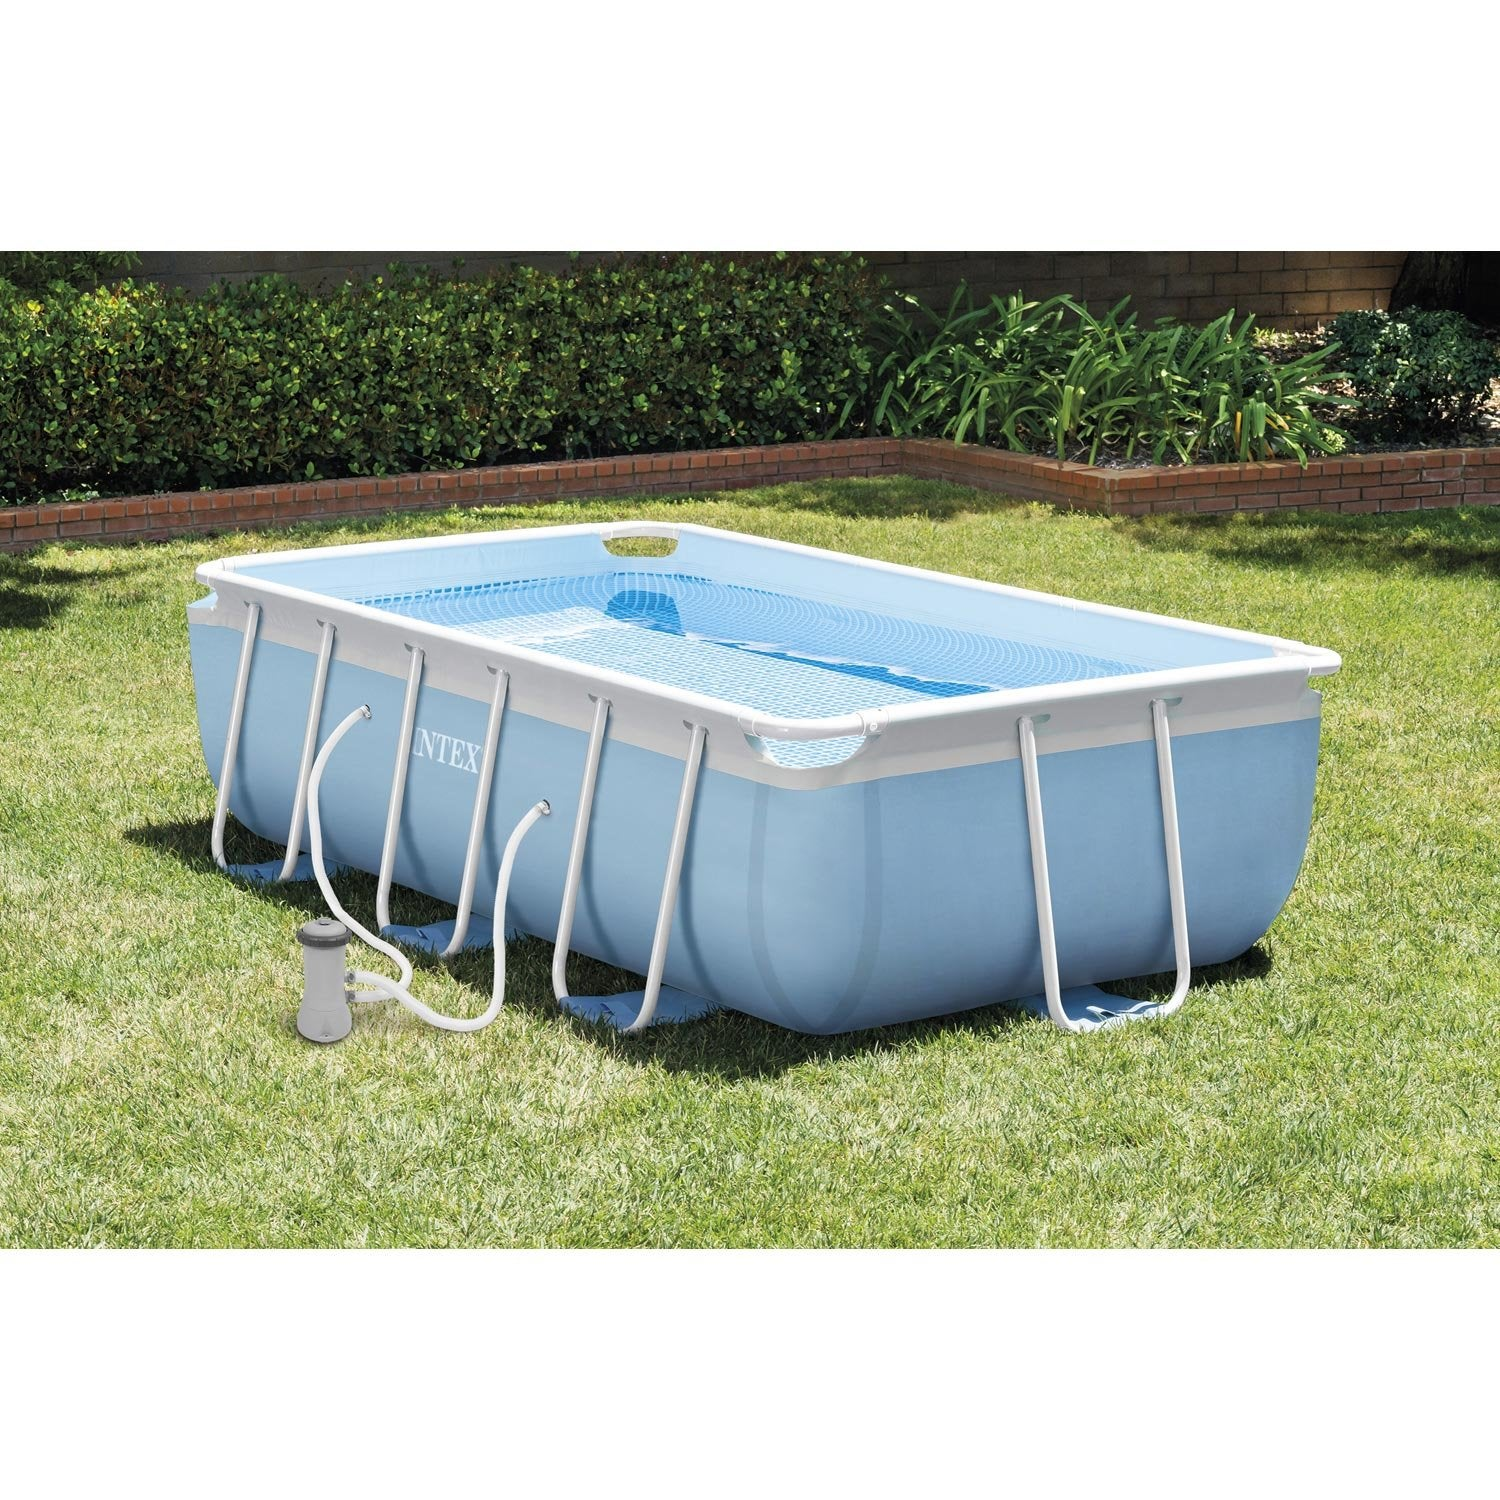 Piscine hors sol autoportante tubulaire intex l 3 4 x l 2 for Piscine tubulaire rectangulaire en solde